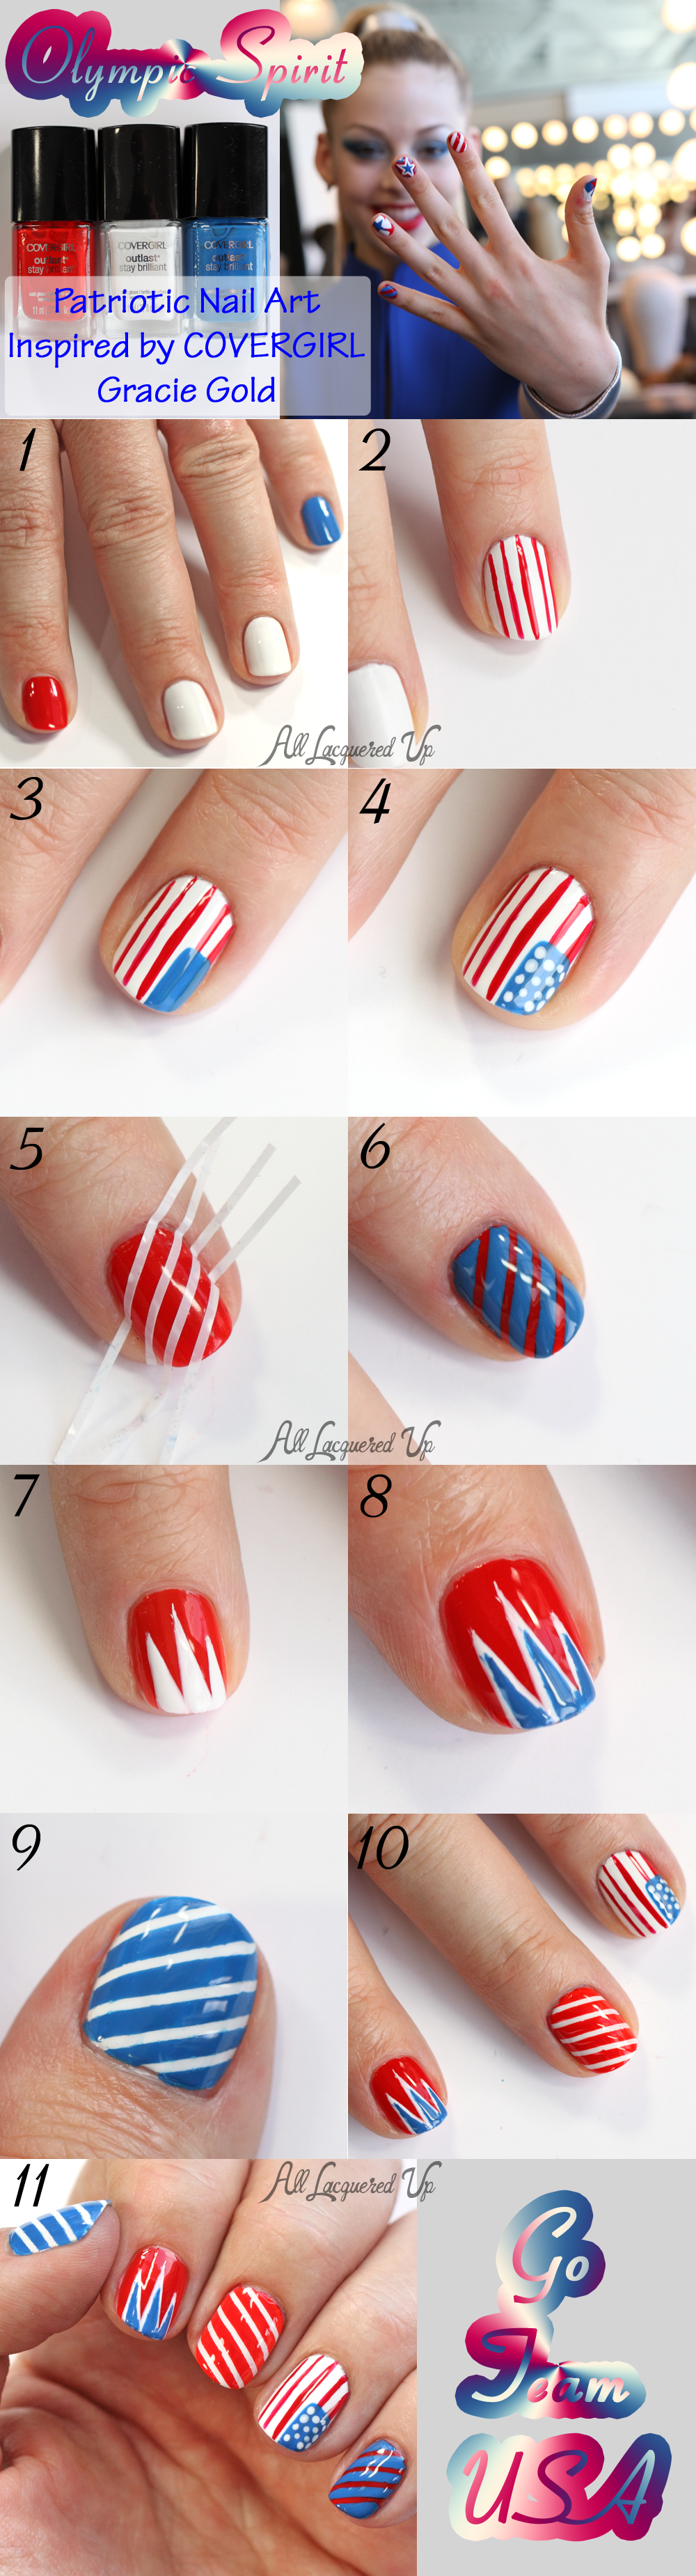 COVERGIRL Gracie Gold Inspired Olympic #TeamUSA #NailArt Tutorial